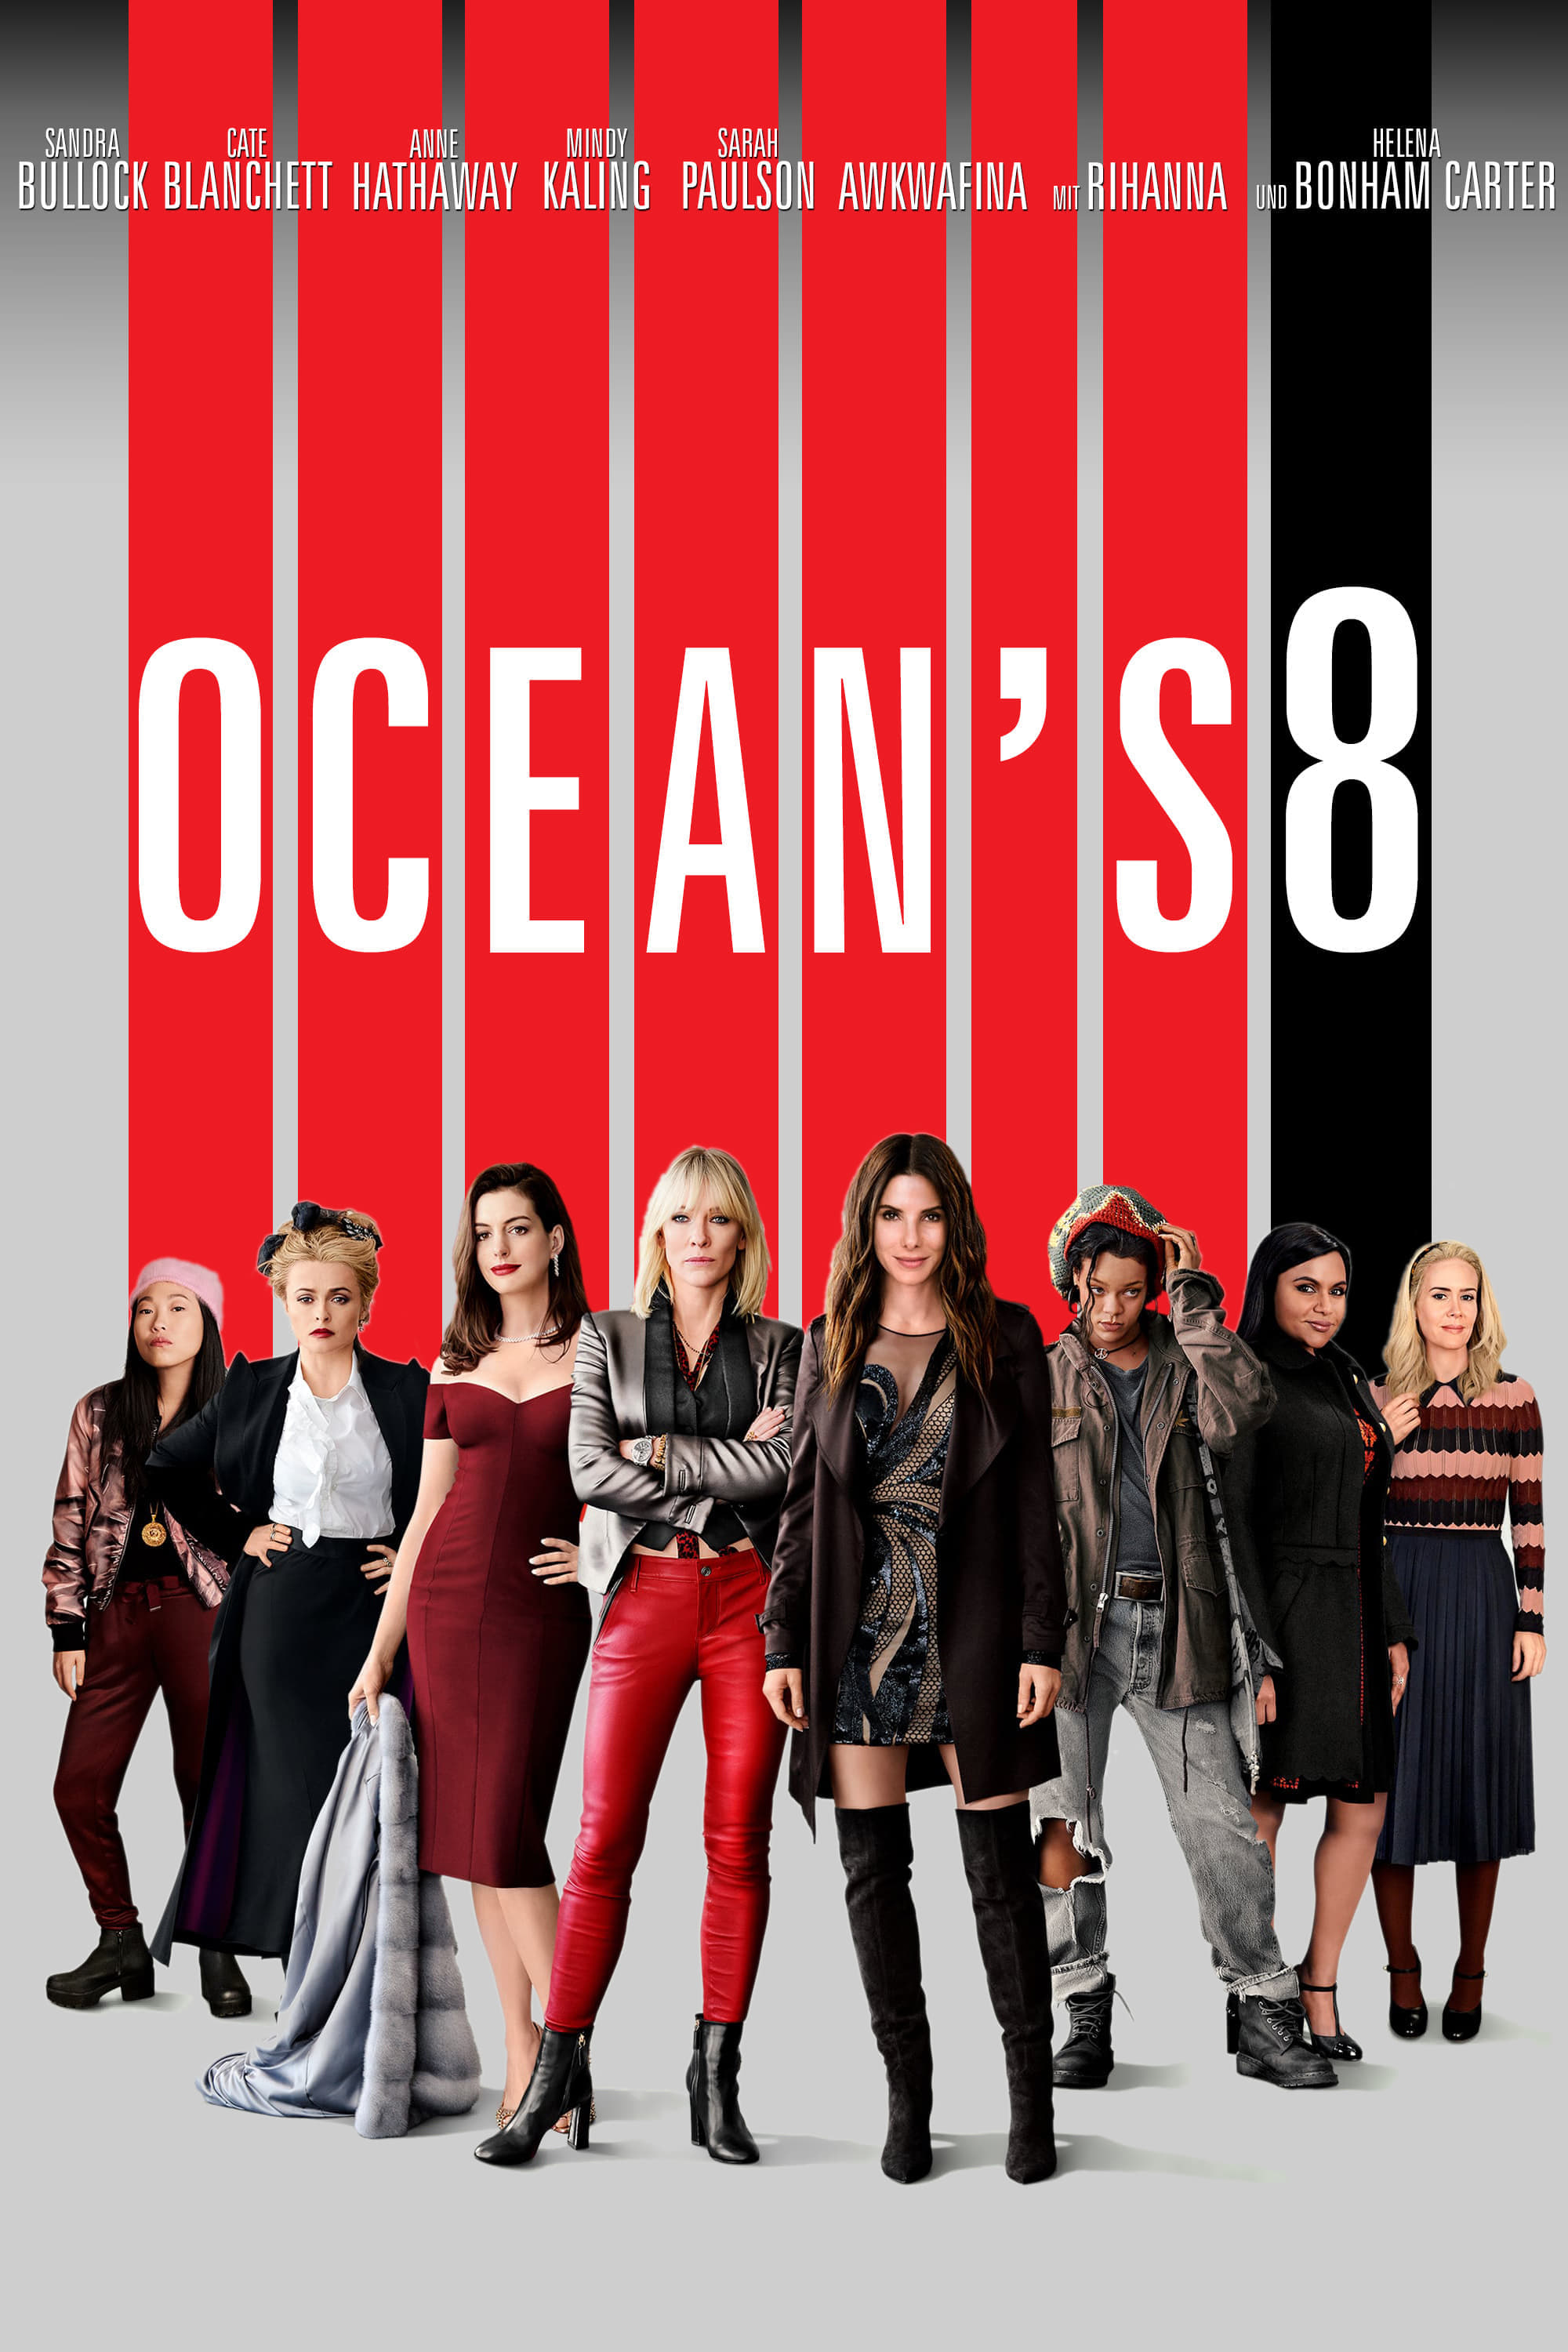 OceanS 8 Ganzer Film Deutsch